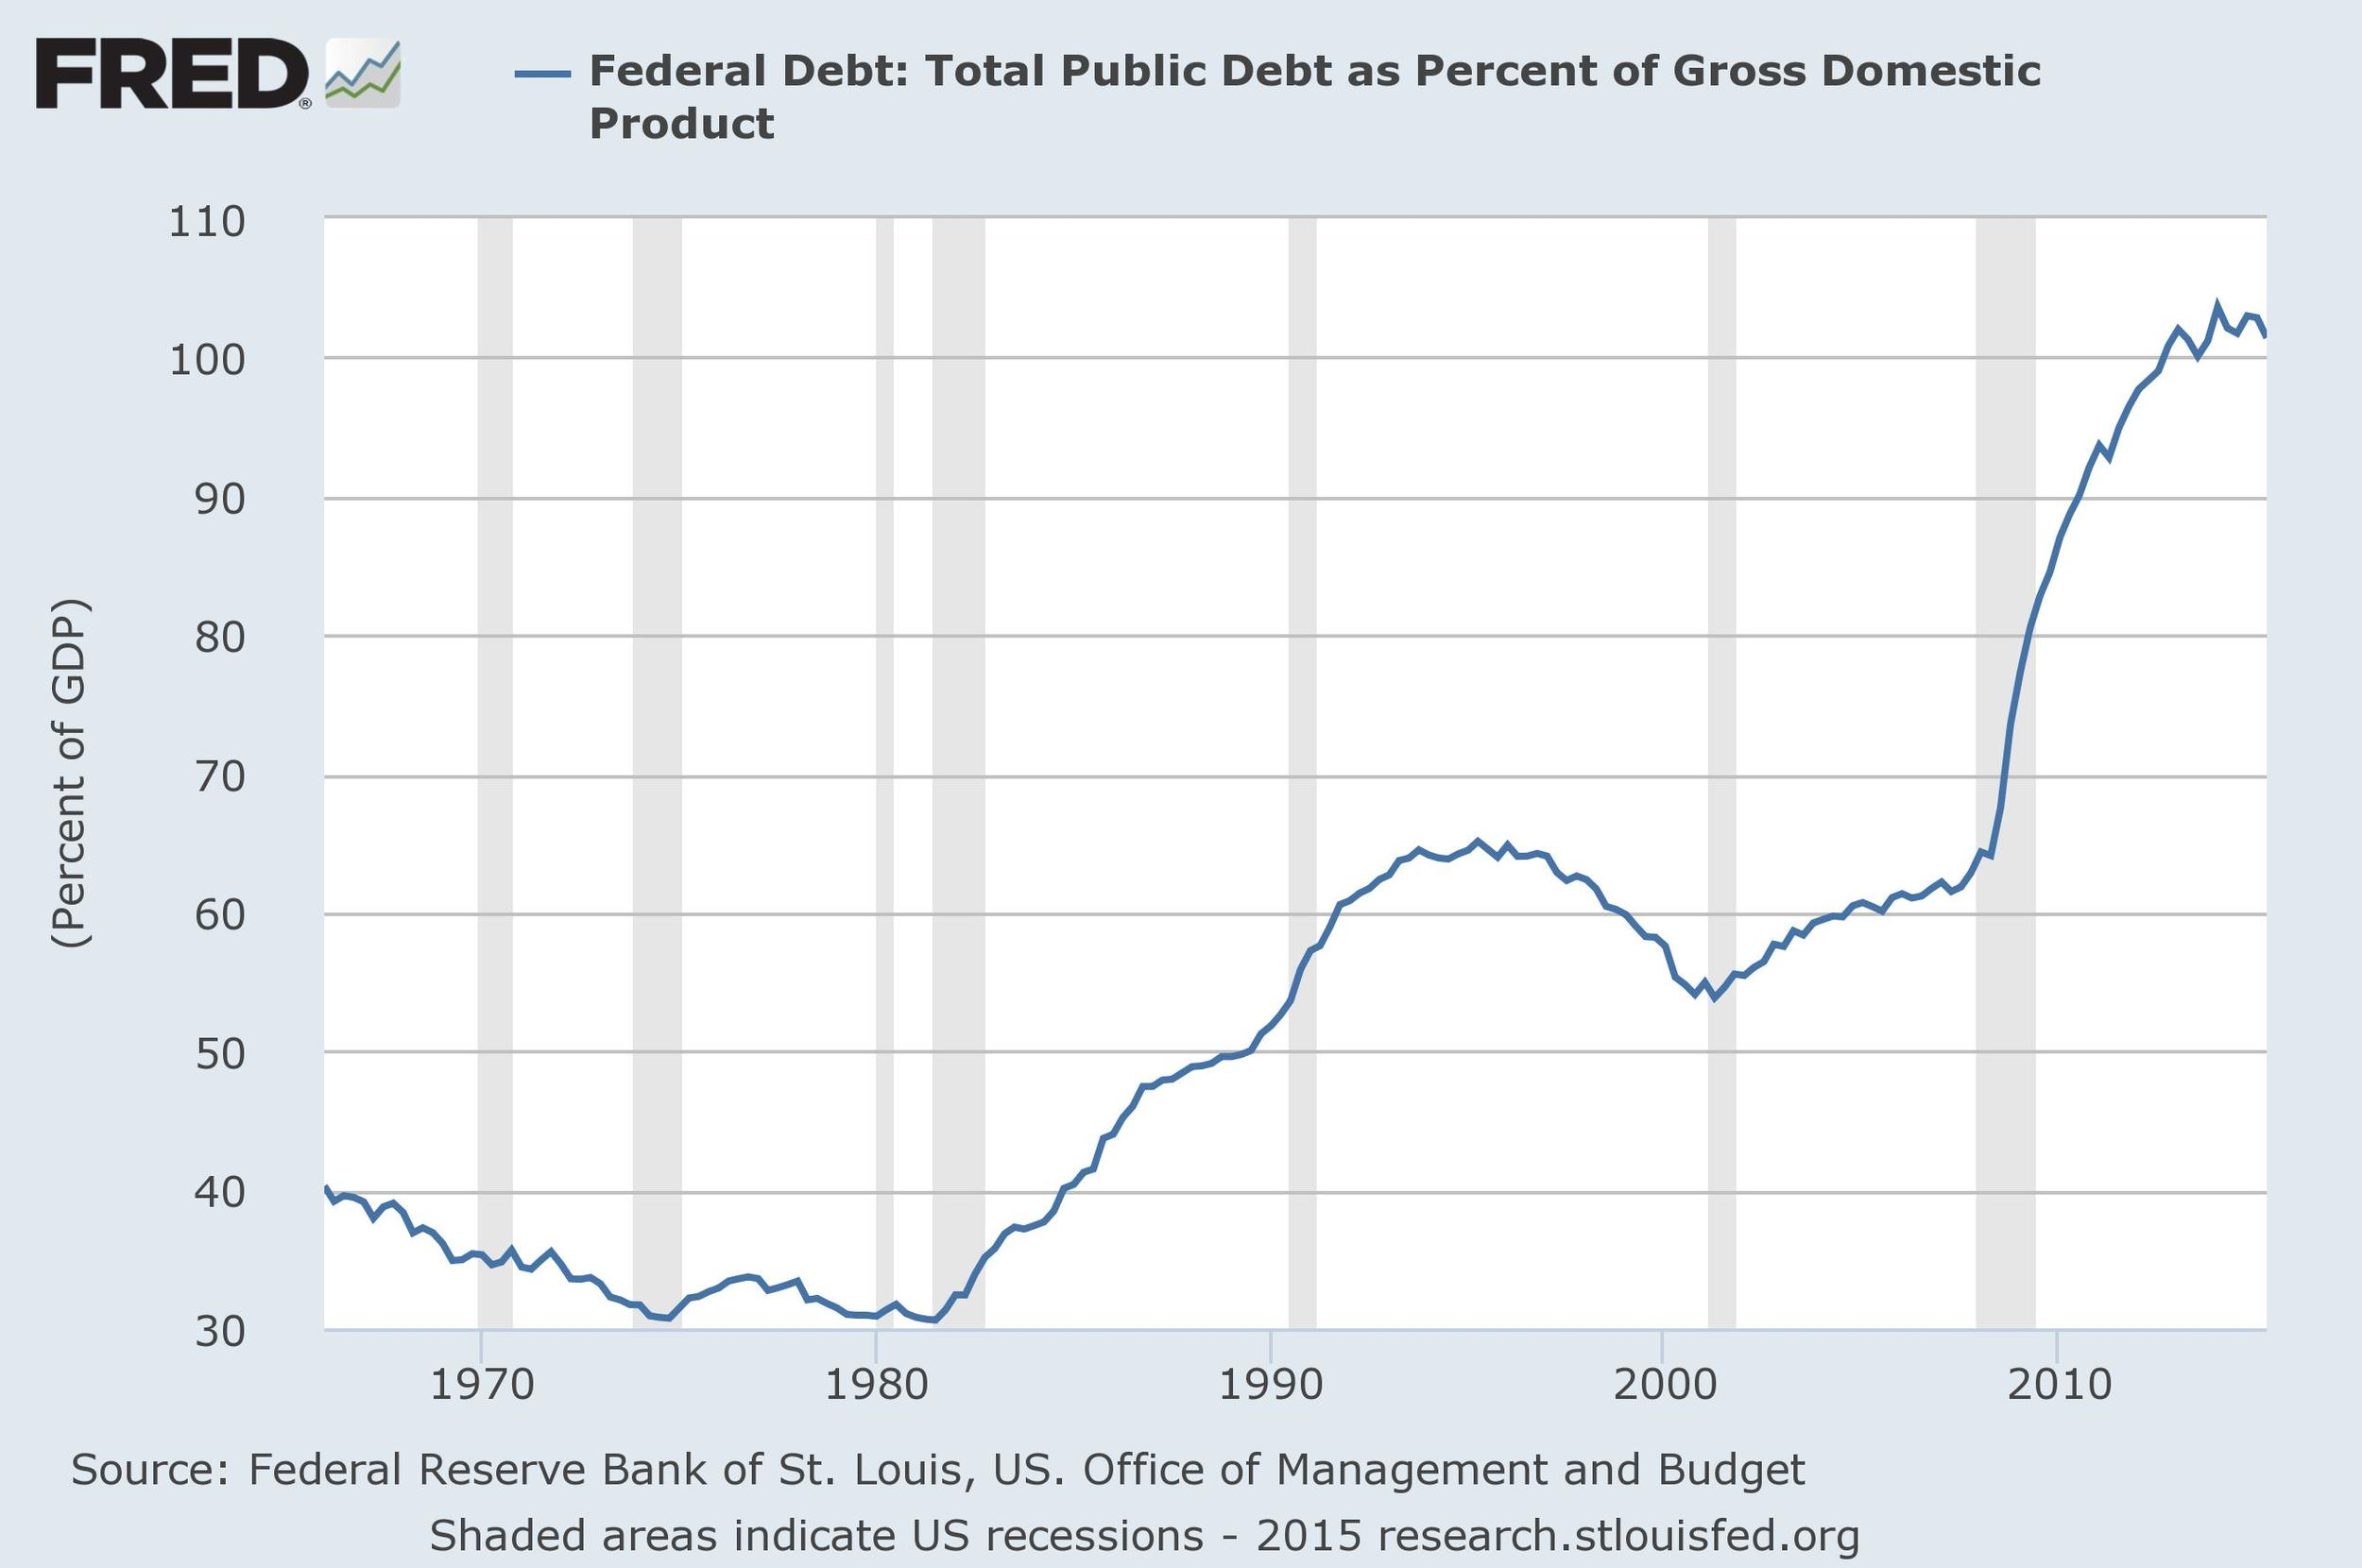 source: Office of Management and Budget, St. Louis Fed